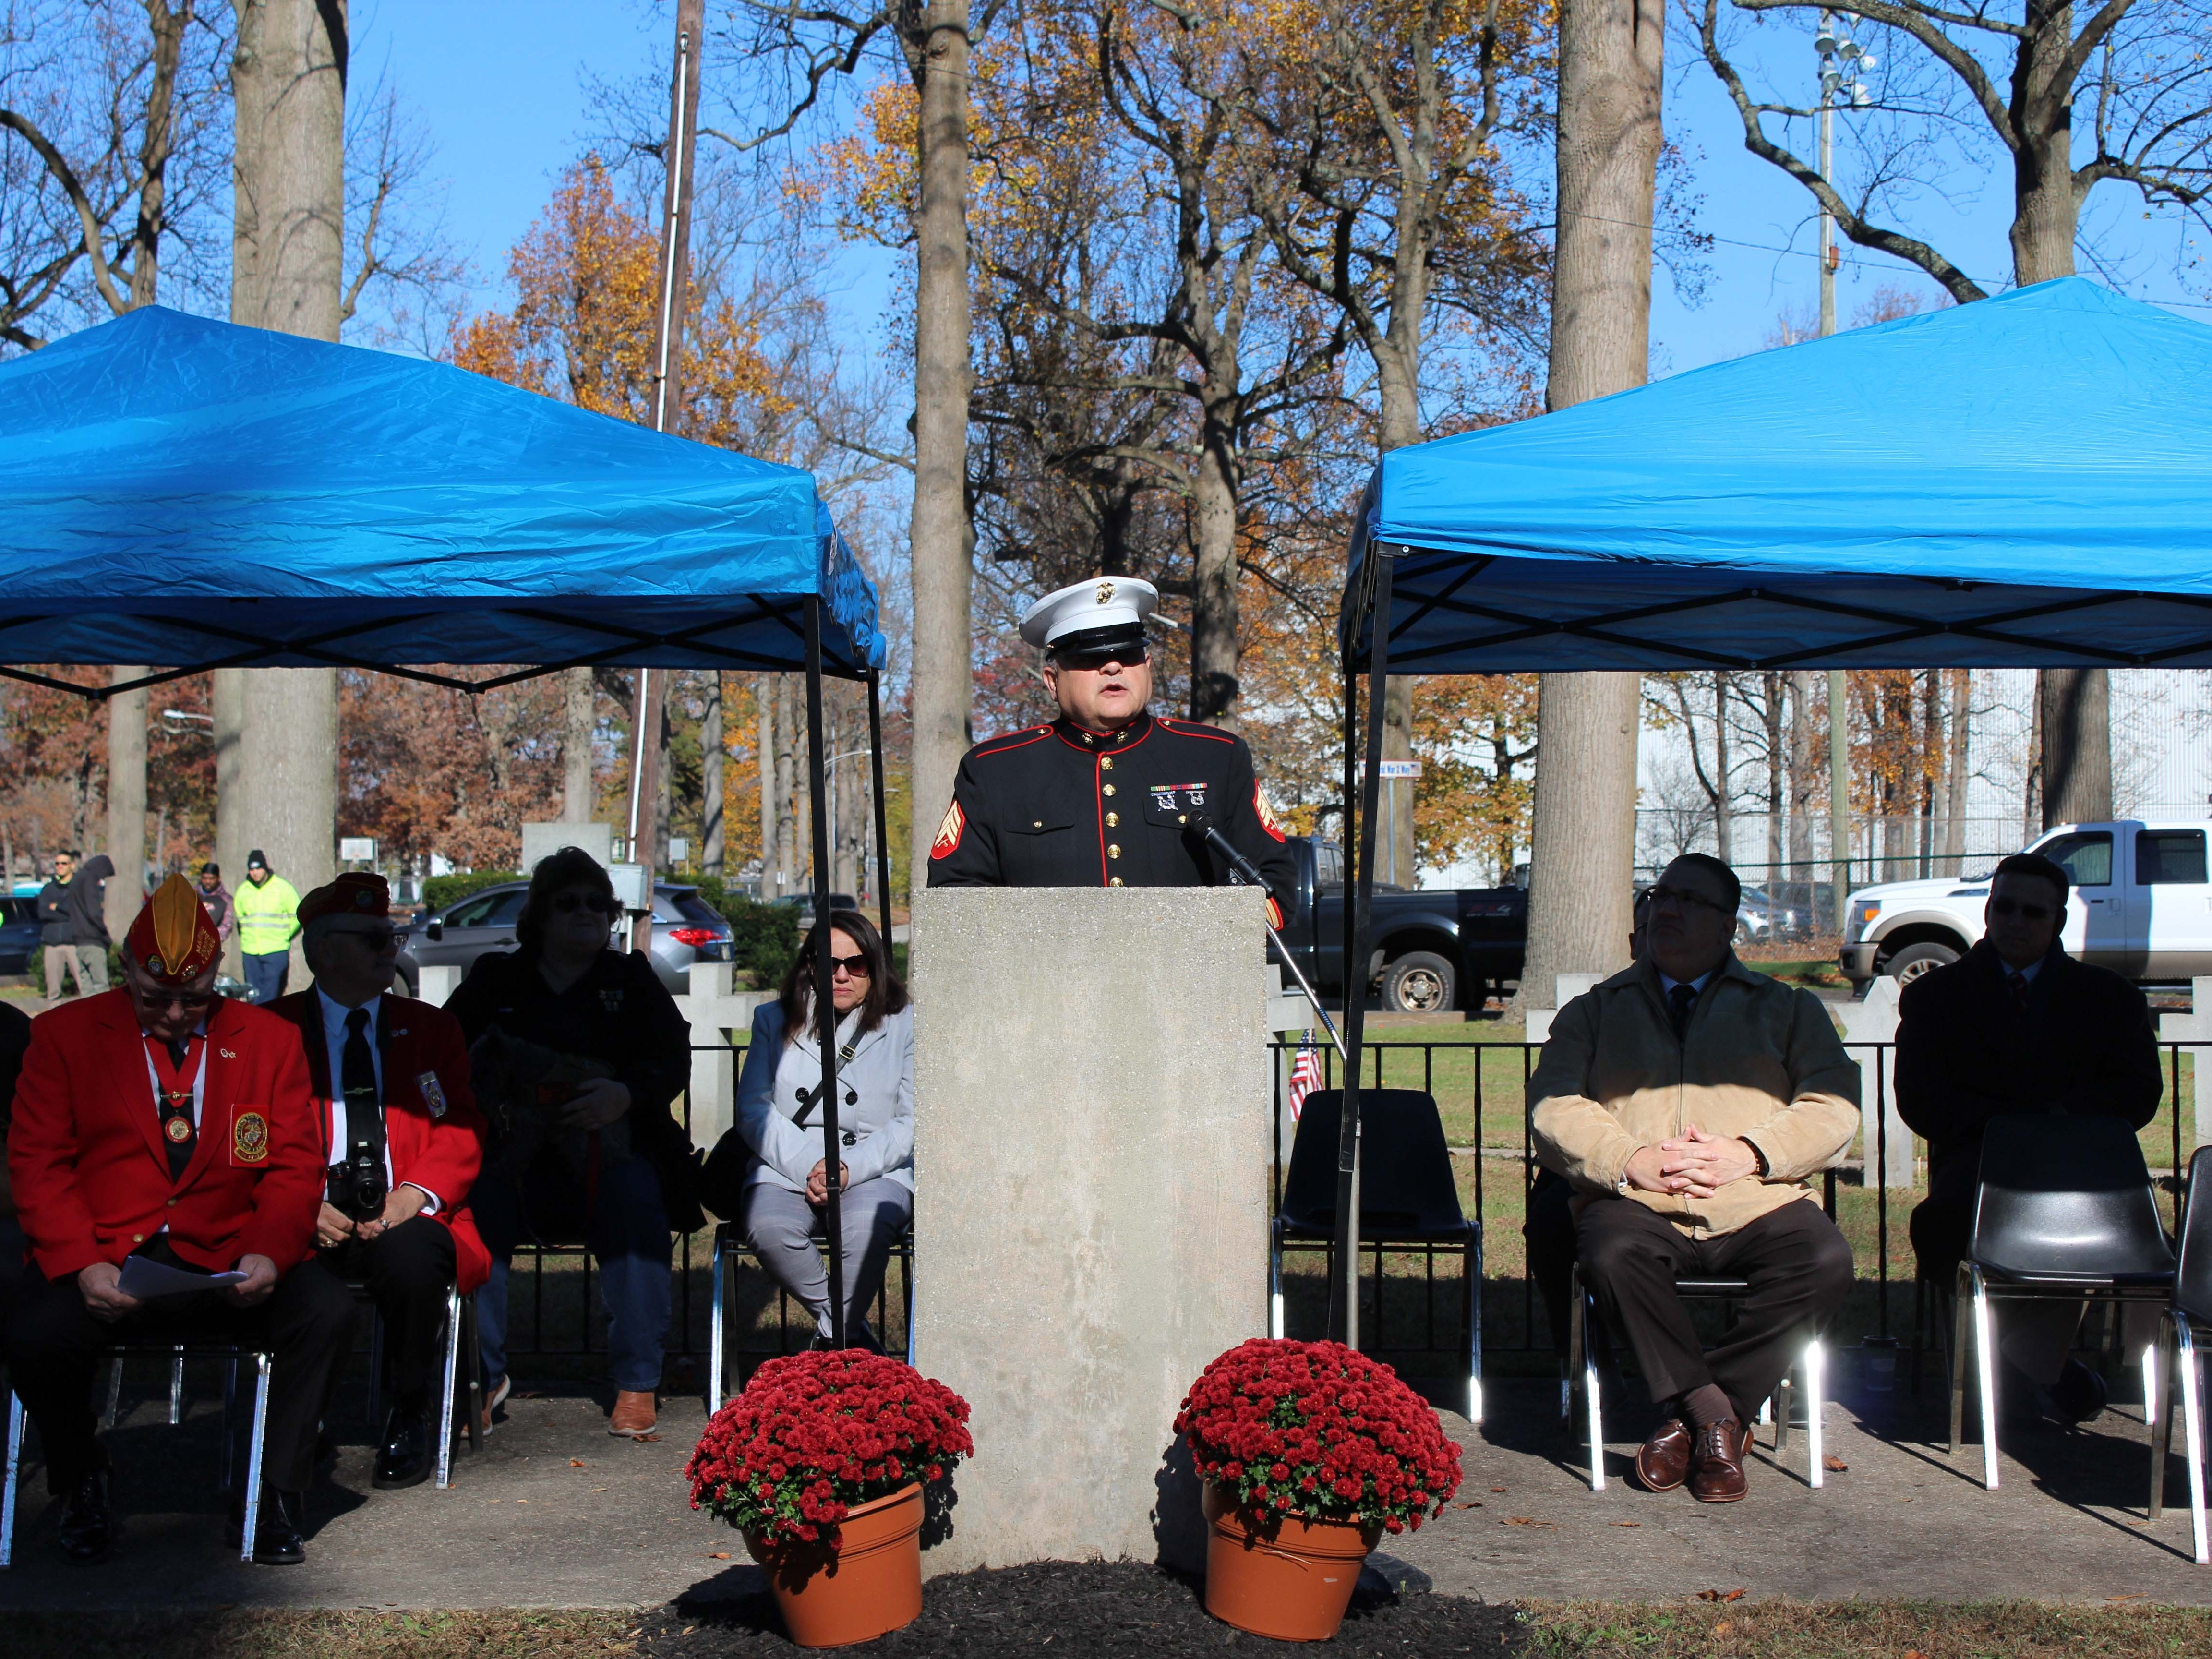 U.S. Marine veteran and retired police officer, Edwin Alicea was the ceremony's guest speaker.